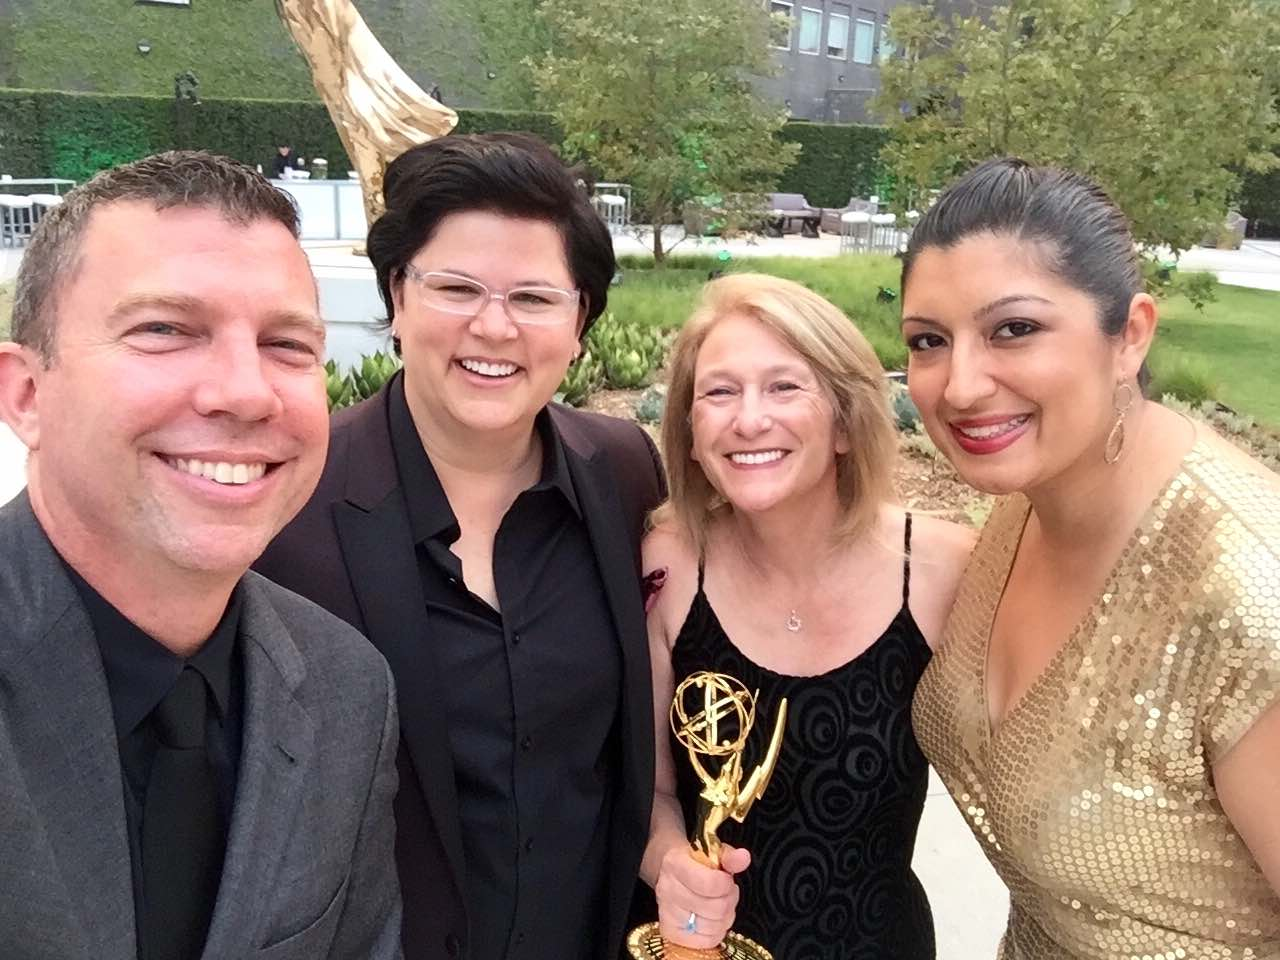 Emmy Award recipients, left to right: Public Information Officer Joshua Schare, Director of Communications Lisa Marie Belsanti, Mayor Lauren Meister and Assistant to the City Manager Janet Jimenez.